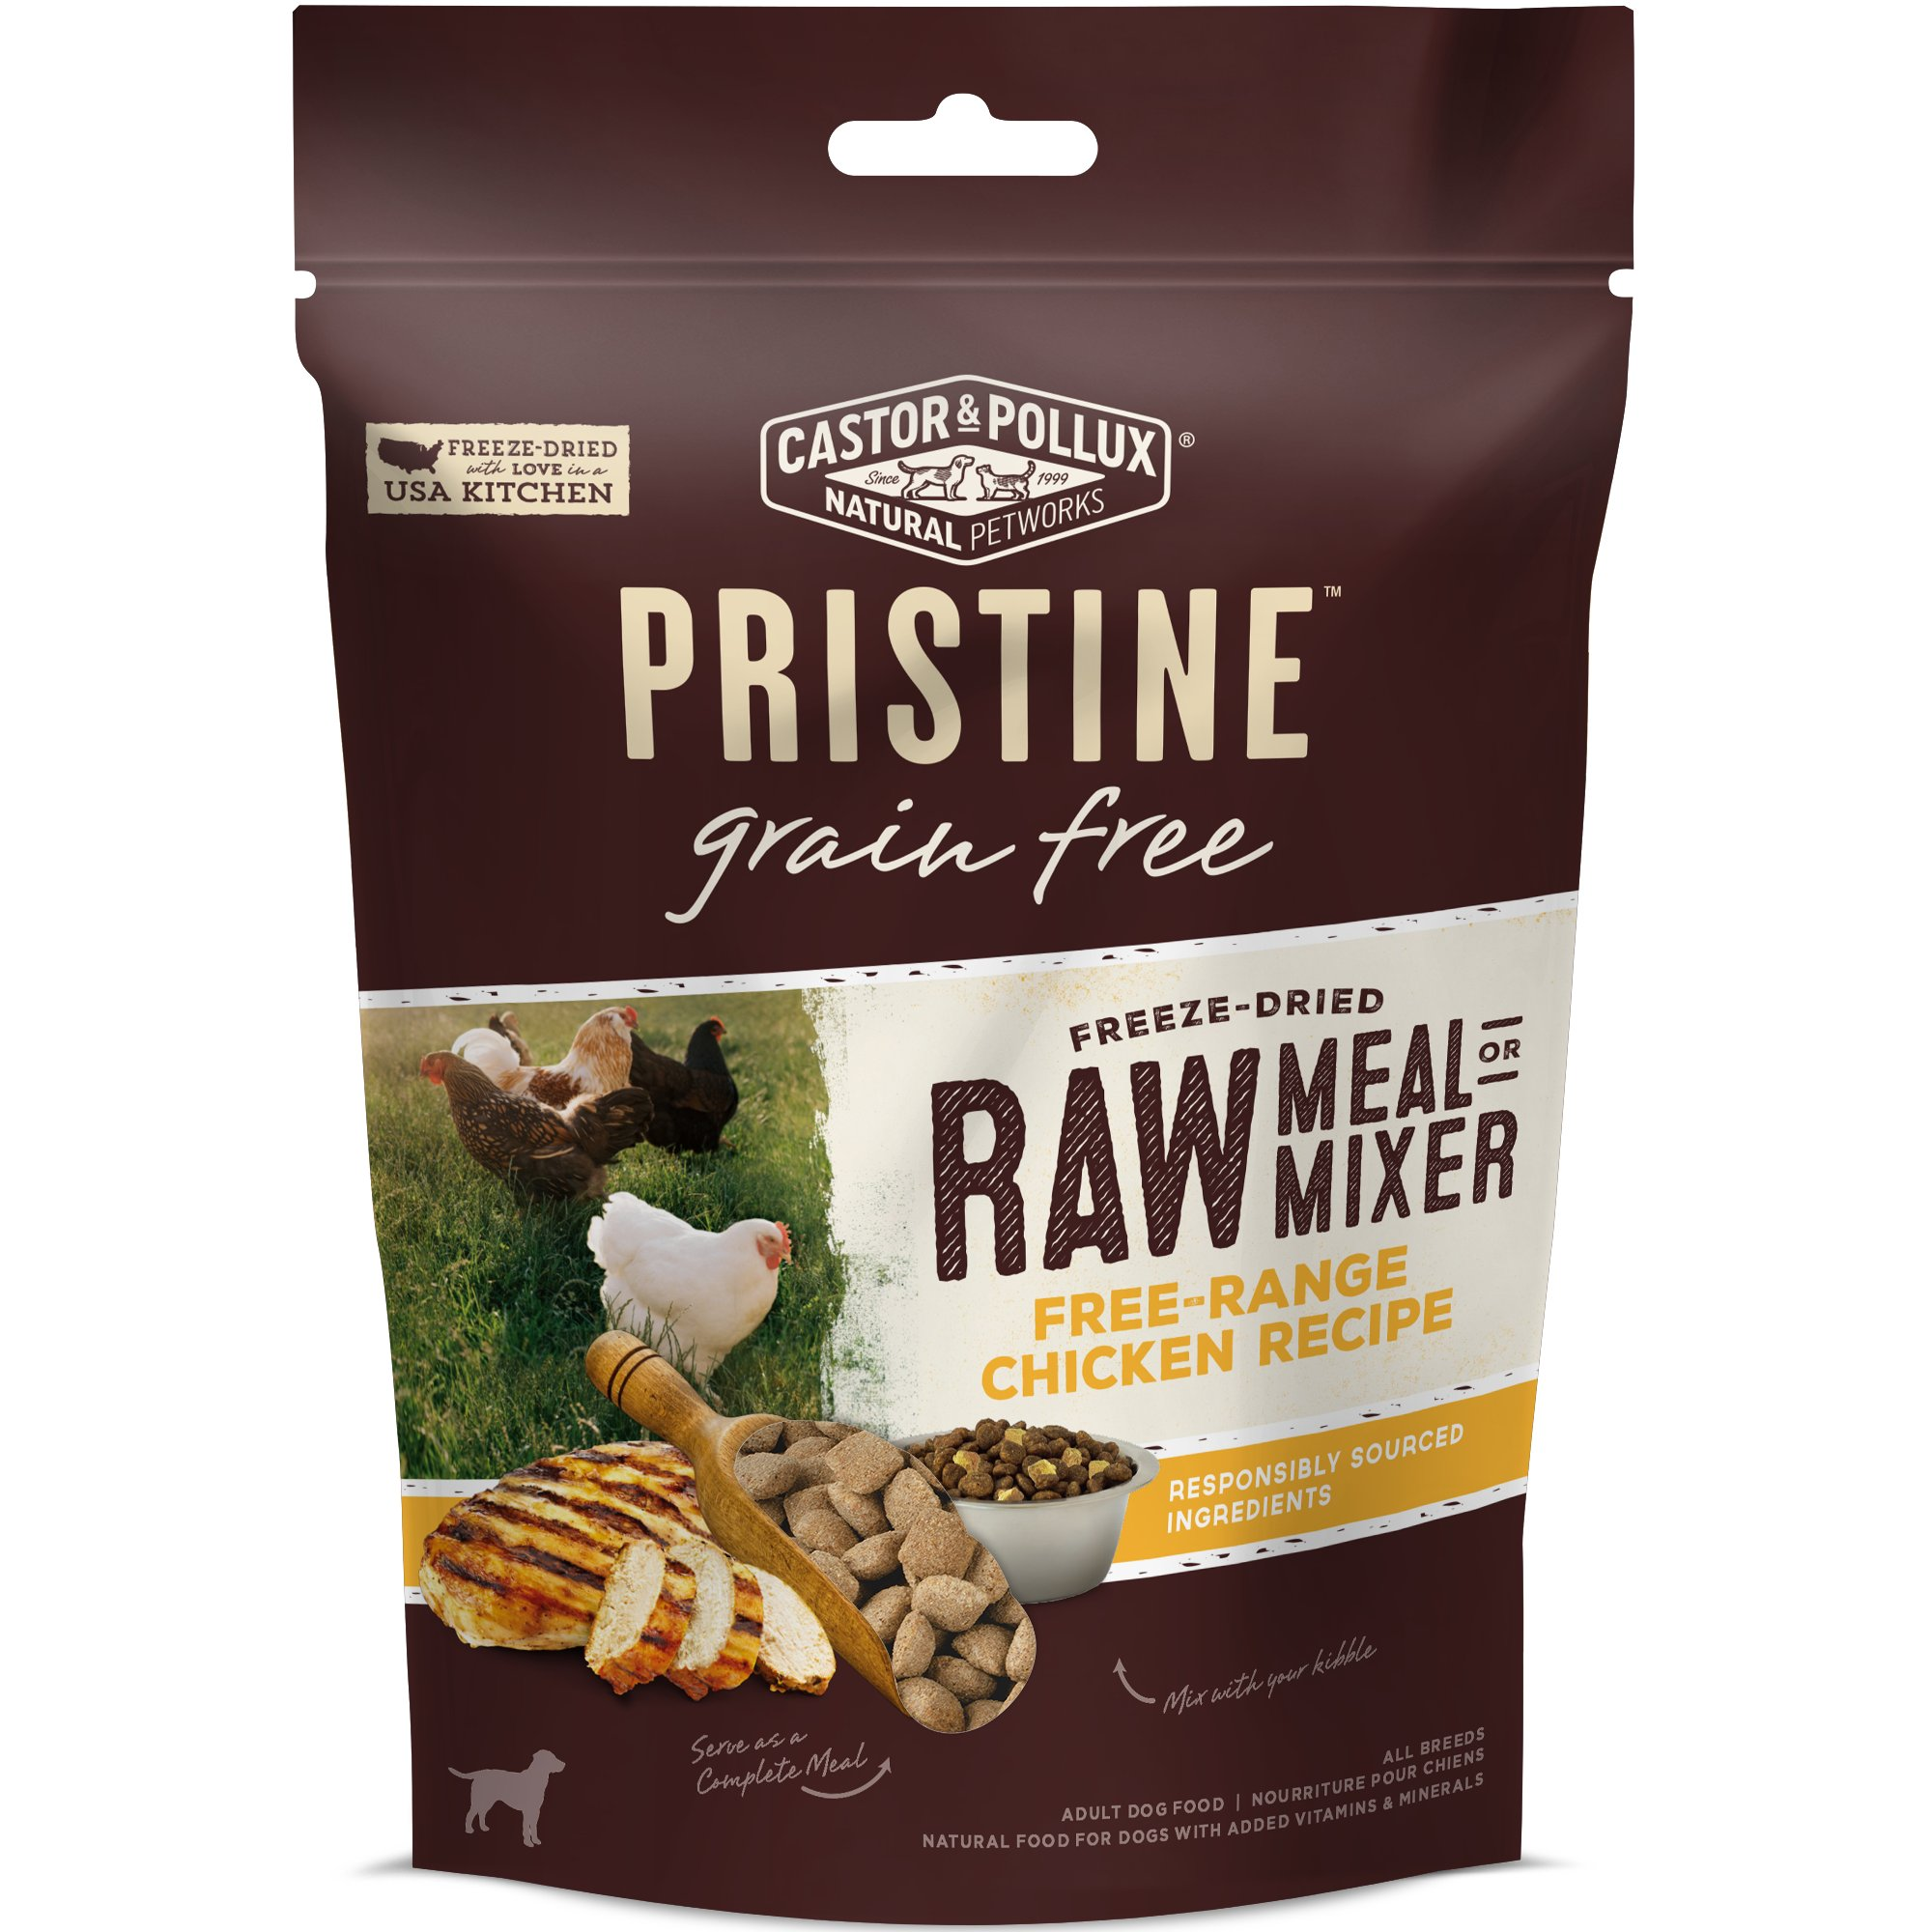 Castor & Pollux Pristine Grain Free Freeze-Dried Raw Meal or Mixer Free Range Chicken Recipe Adult Dry Dog Food, 5.5 oz.